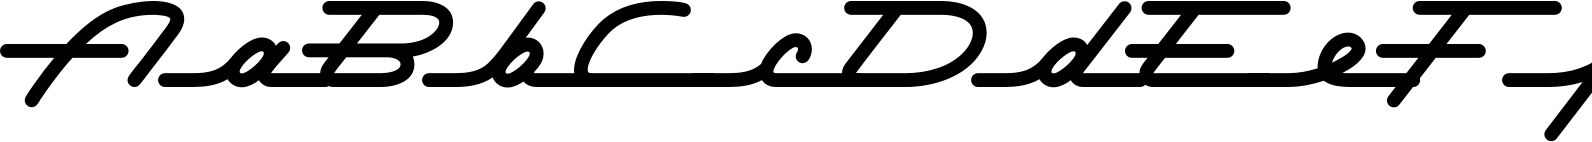 Permanent Waves Font